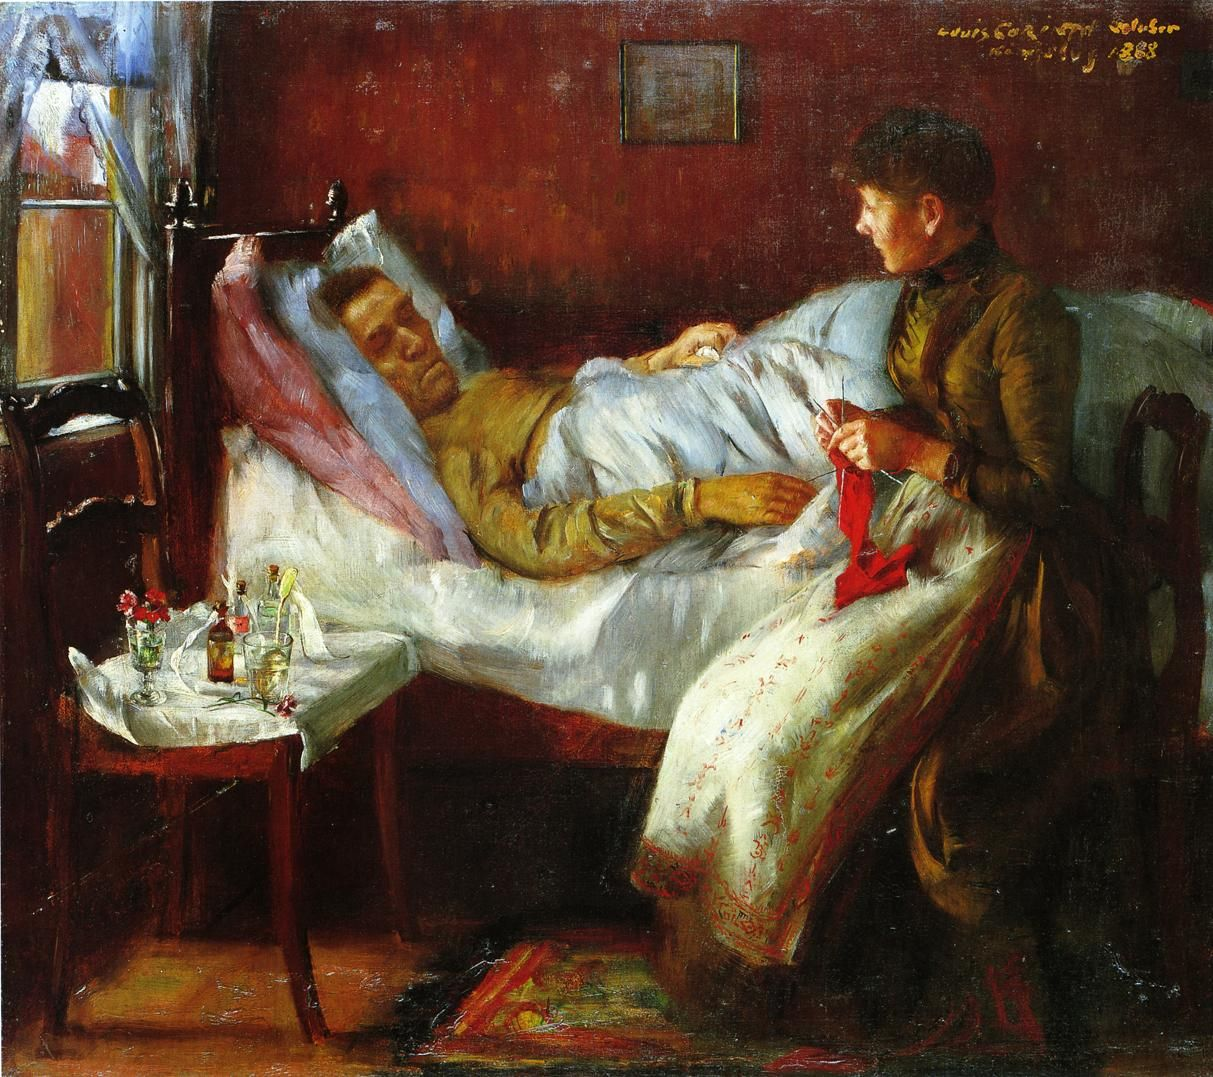 10 Sick Bed Paintings ideas | painting, painter, art